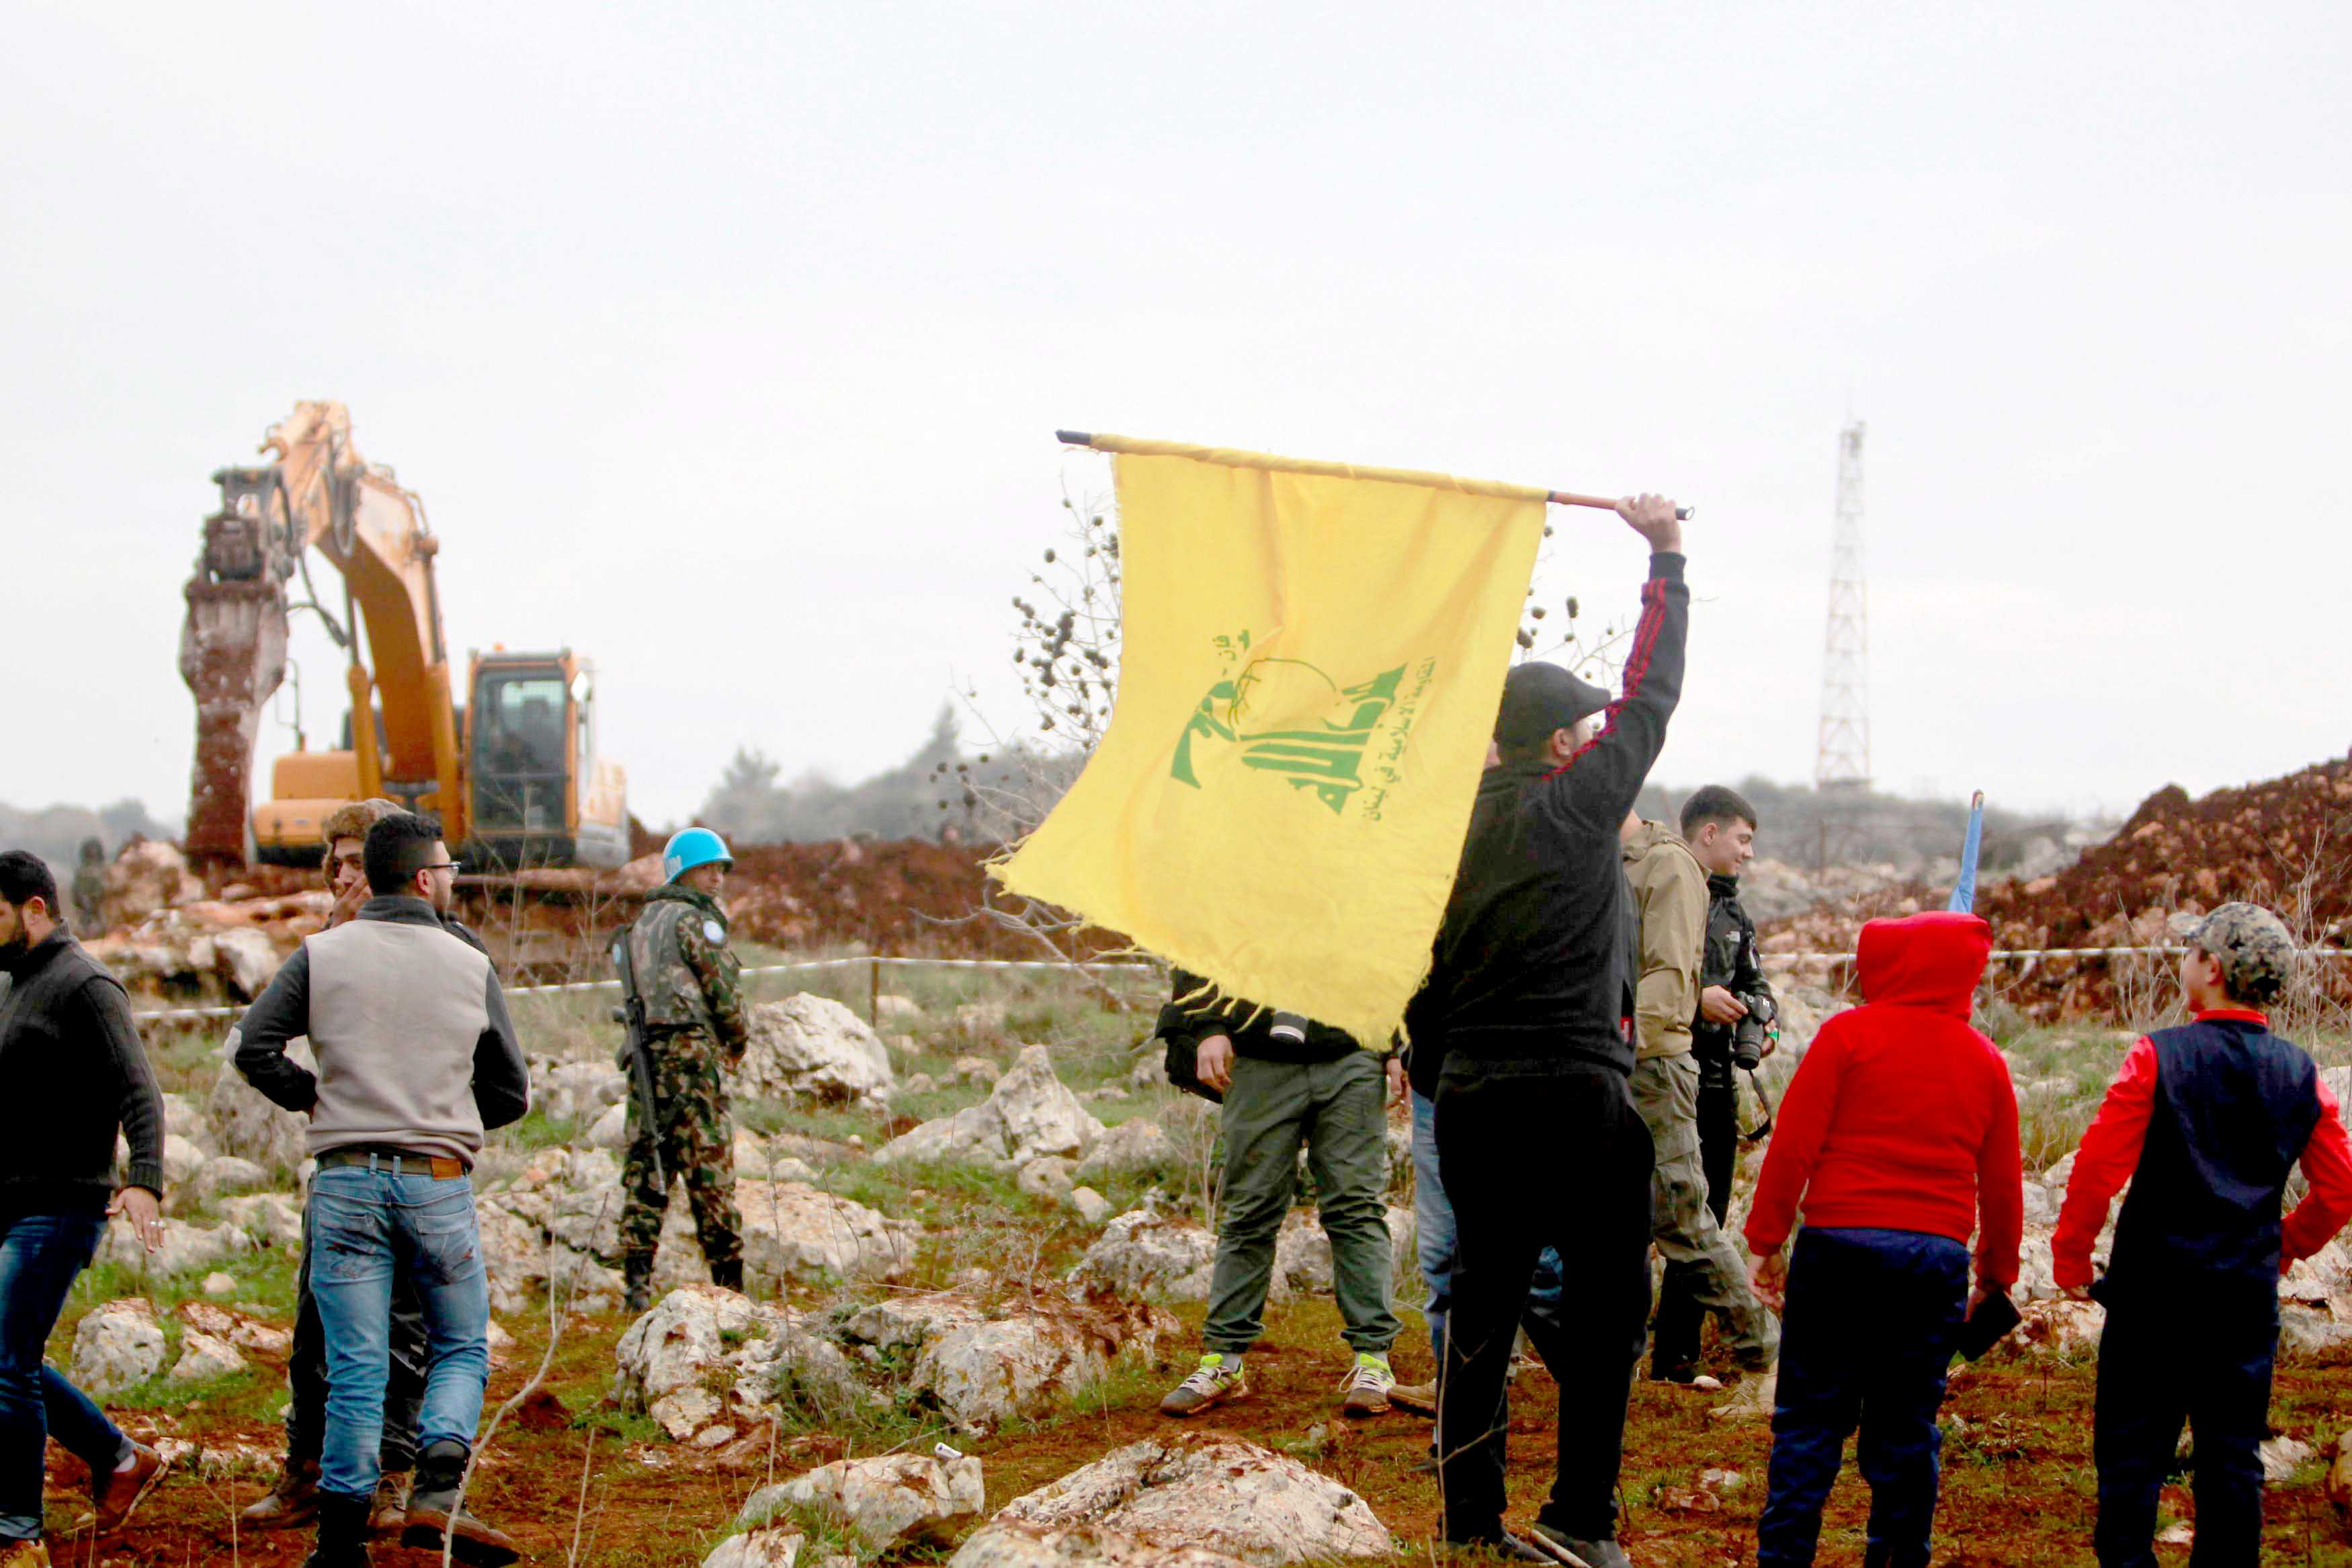 New dilemma. A man holds a Hezbollah flag at Meis al-Jabal village in south Lebanon, December 9. (Reuters)